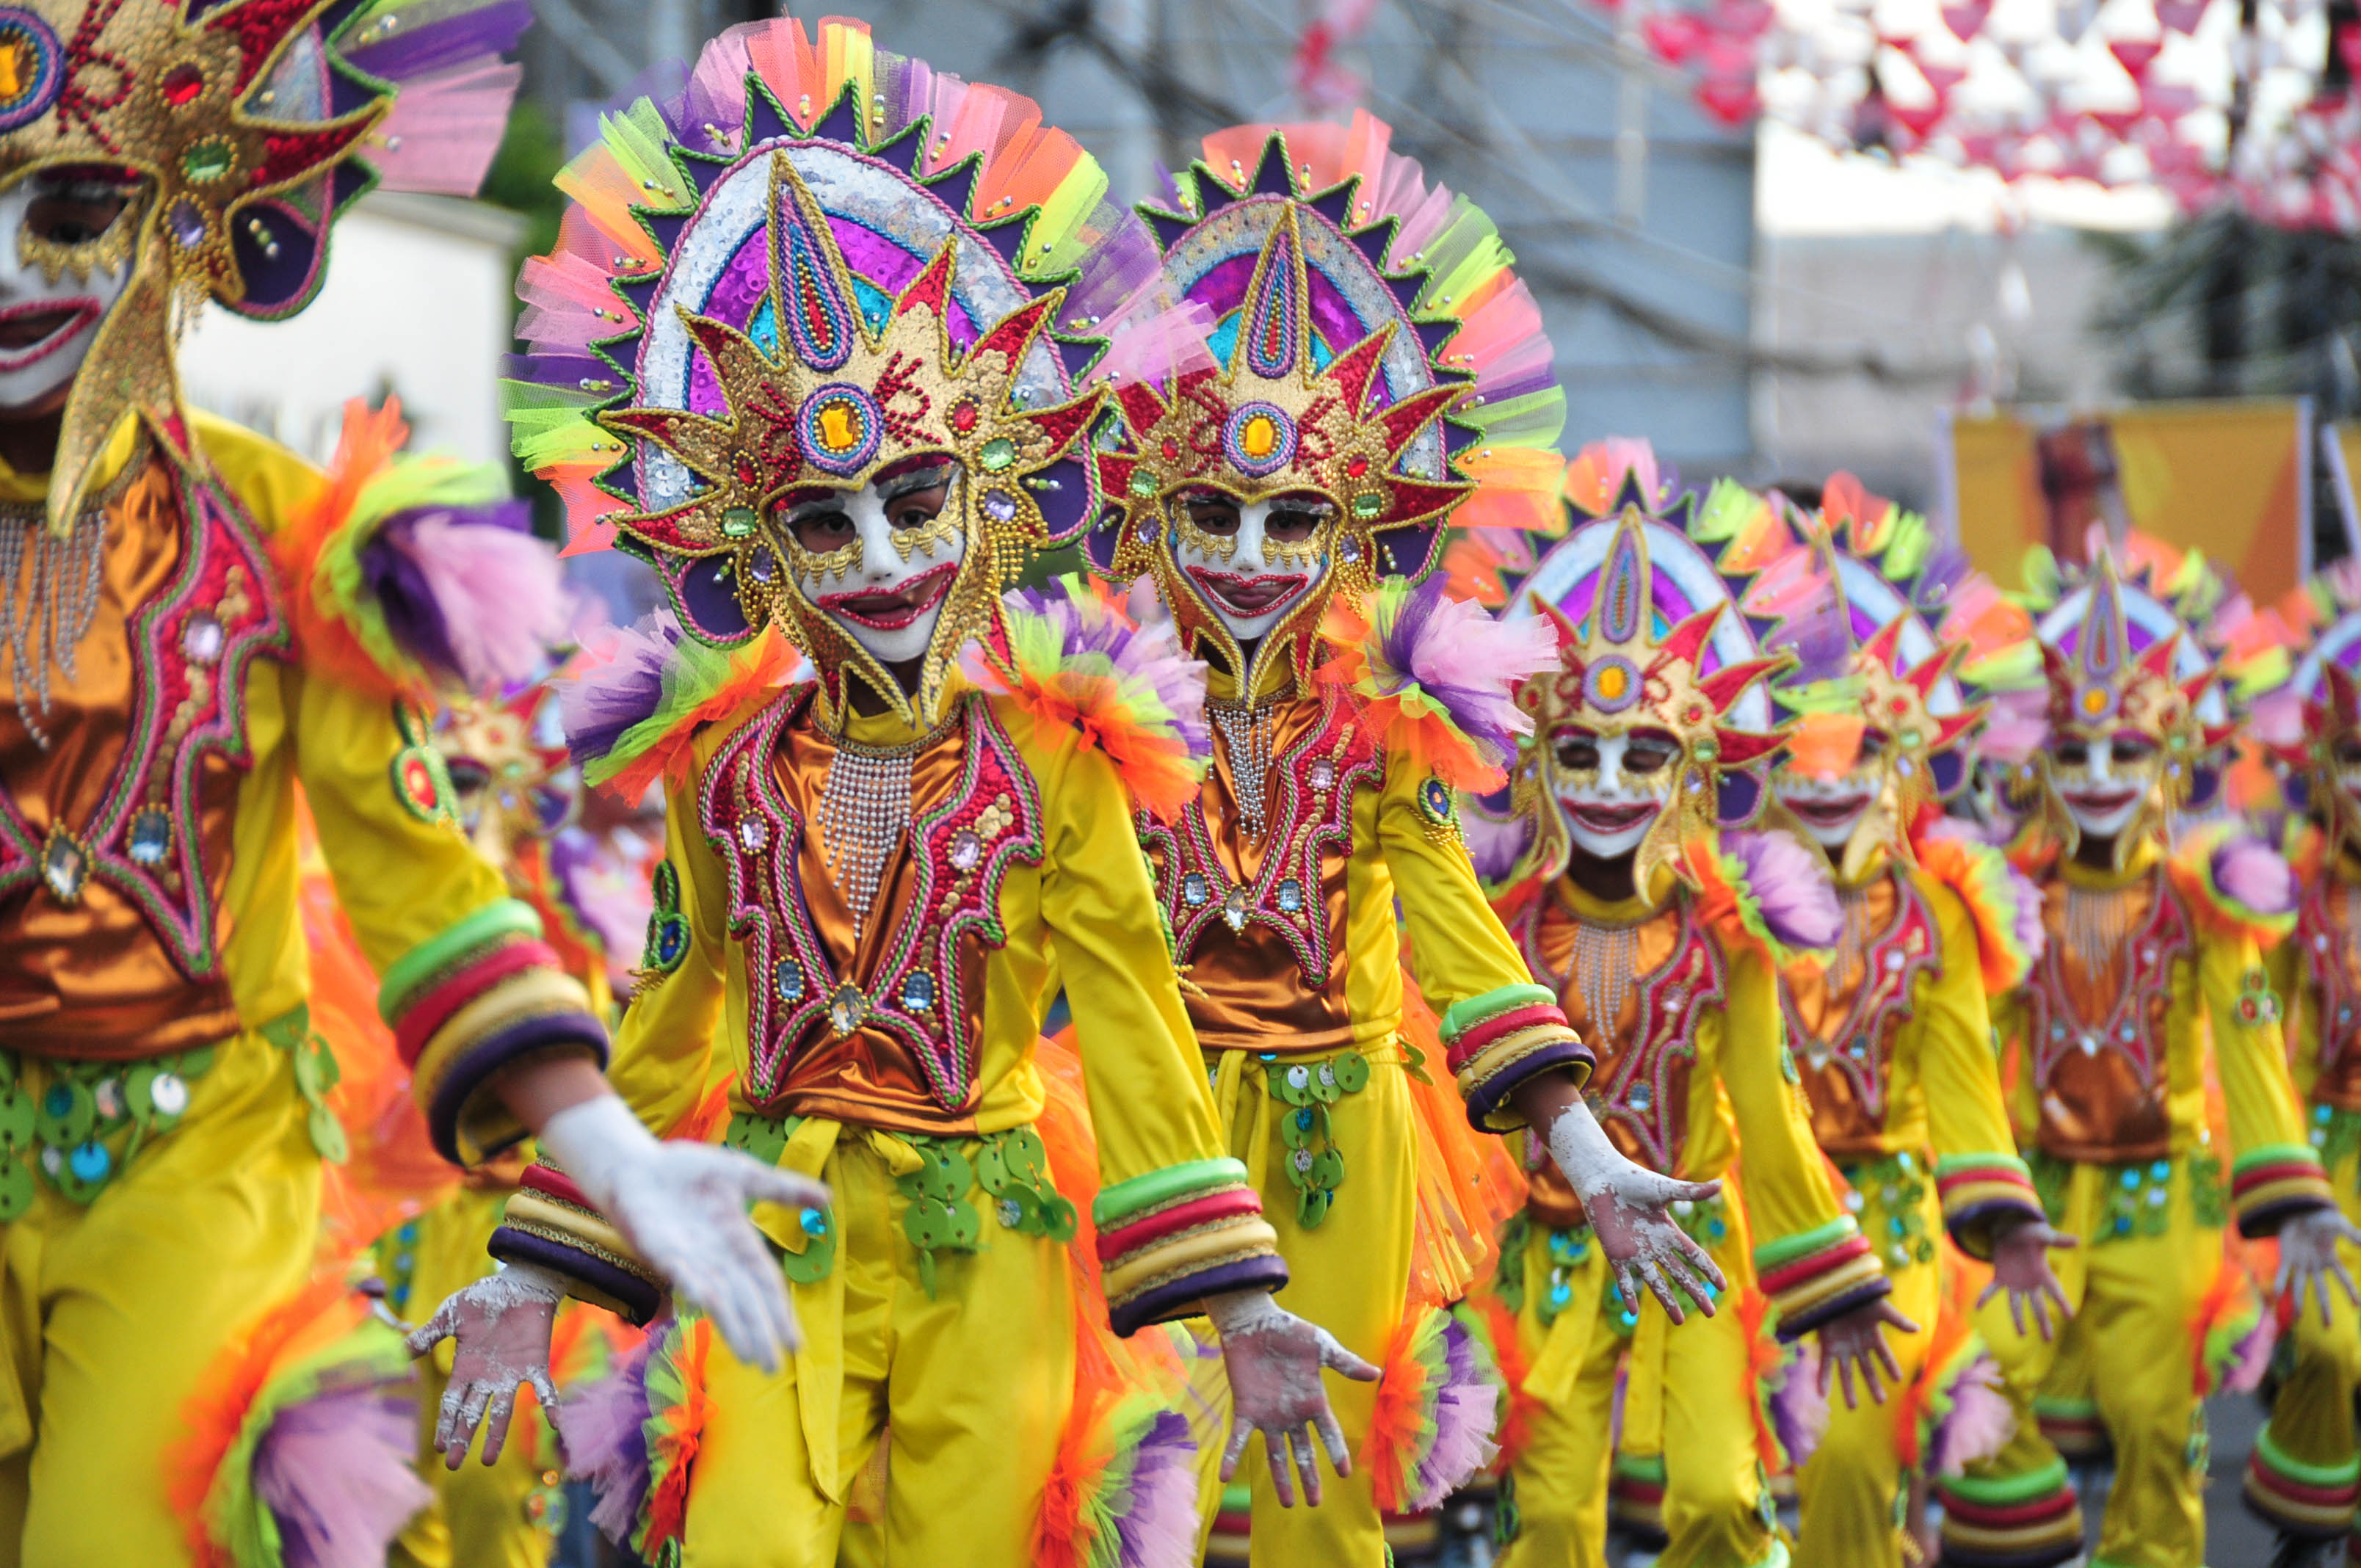 The Ultimate Masquerade Fun: Masskara Festival  The Mixed Culture